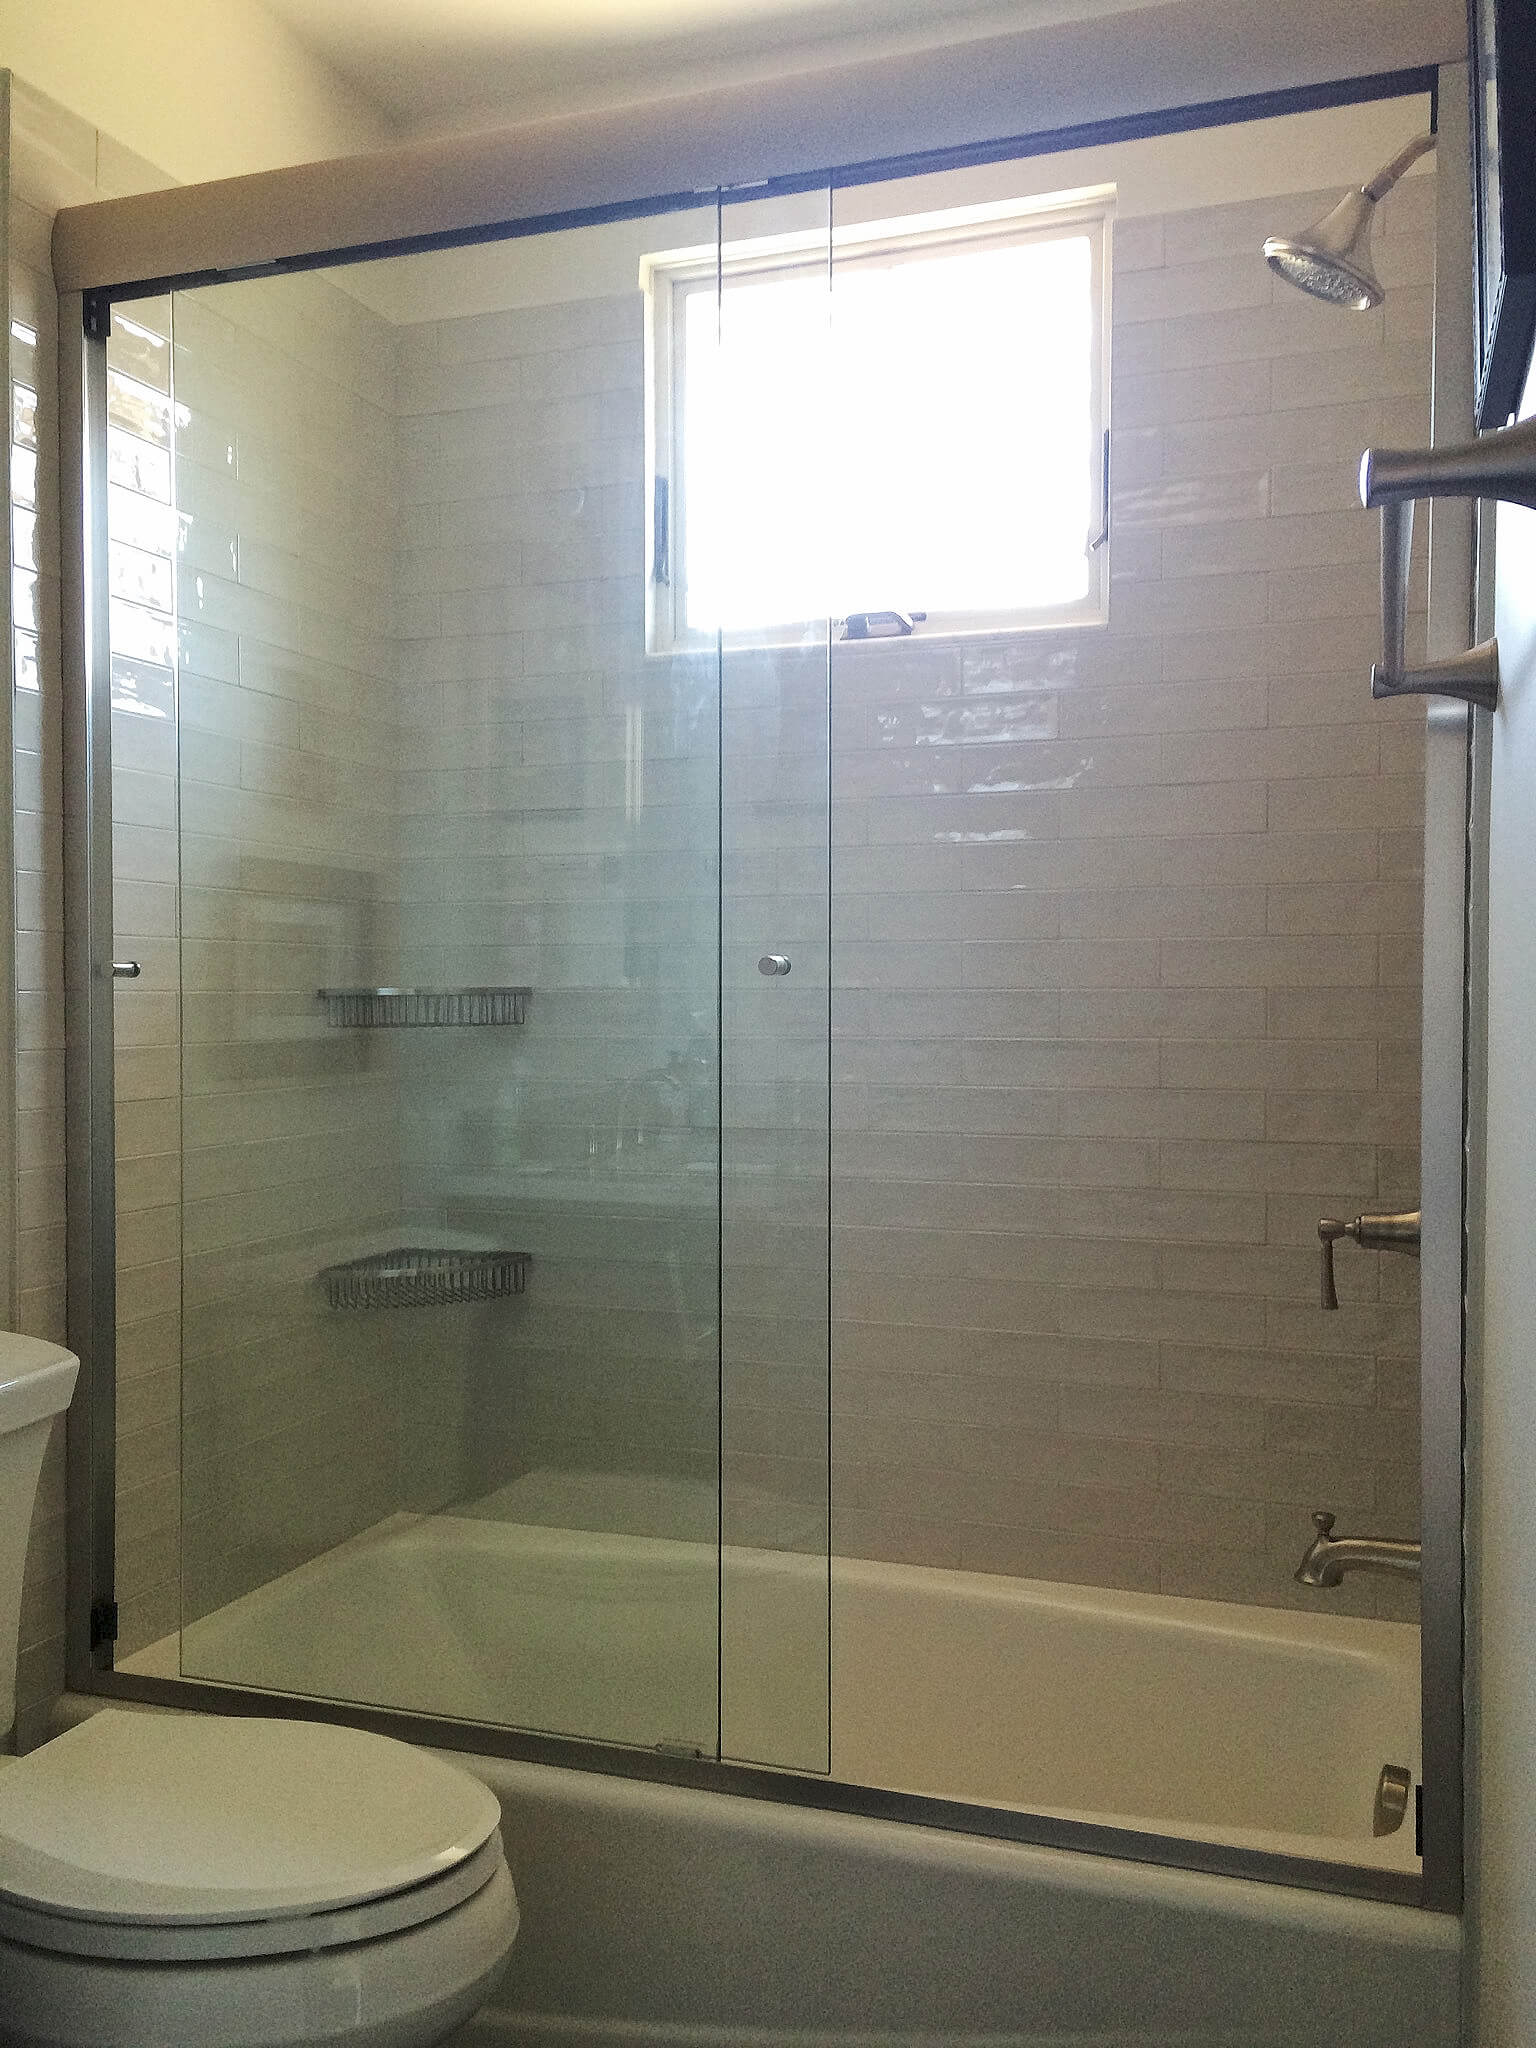 ... semi-frameless shower glass door enclosure ... & Frameless Sliding Shower Doors and Enclosures